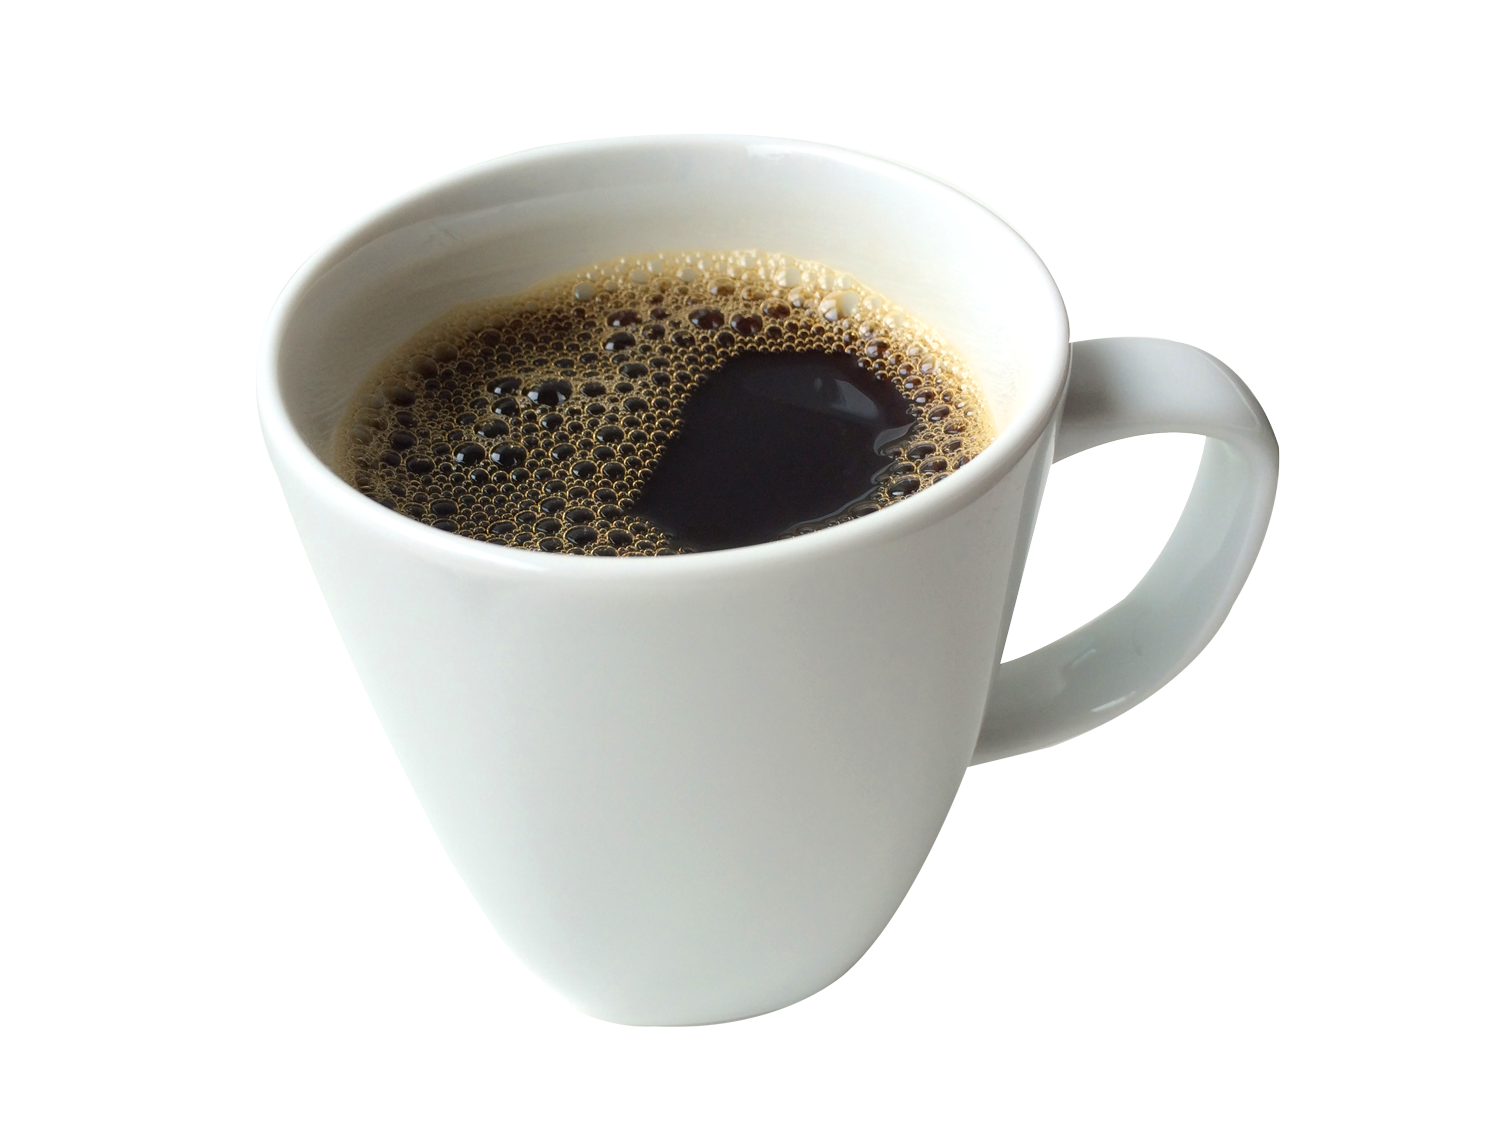 Coffee cup png transparent background. Images free download pngmart